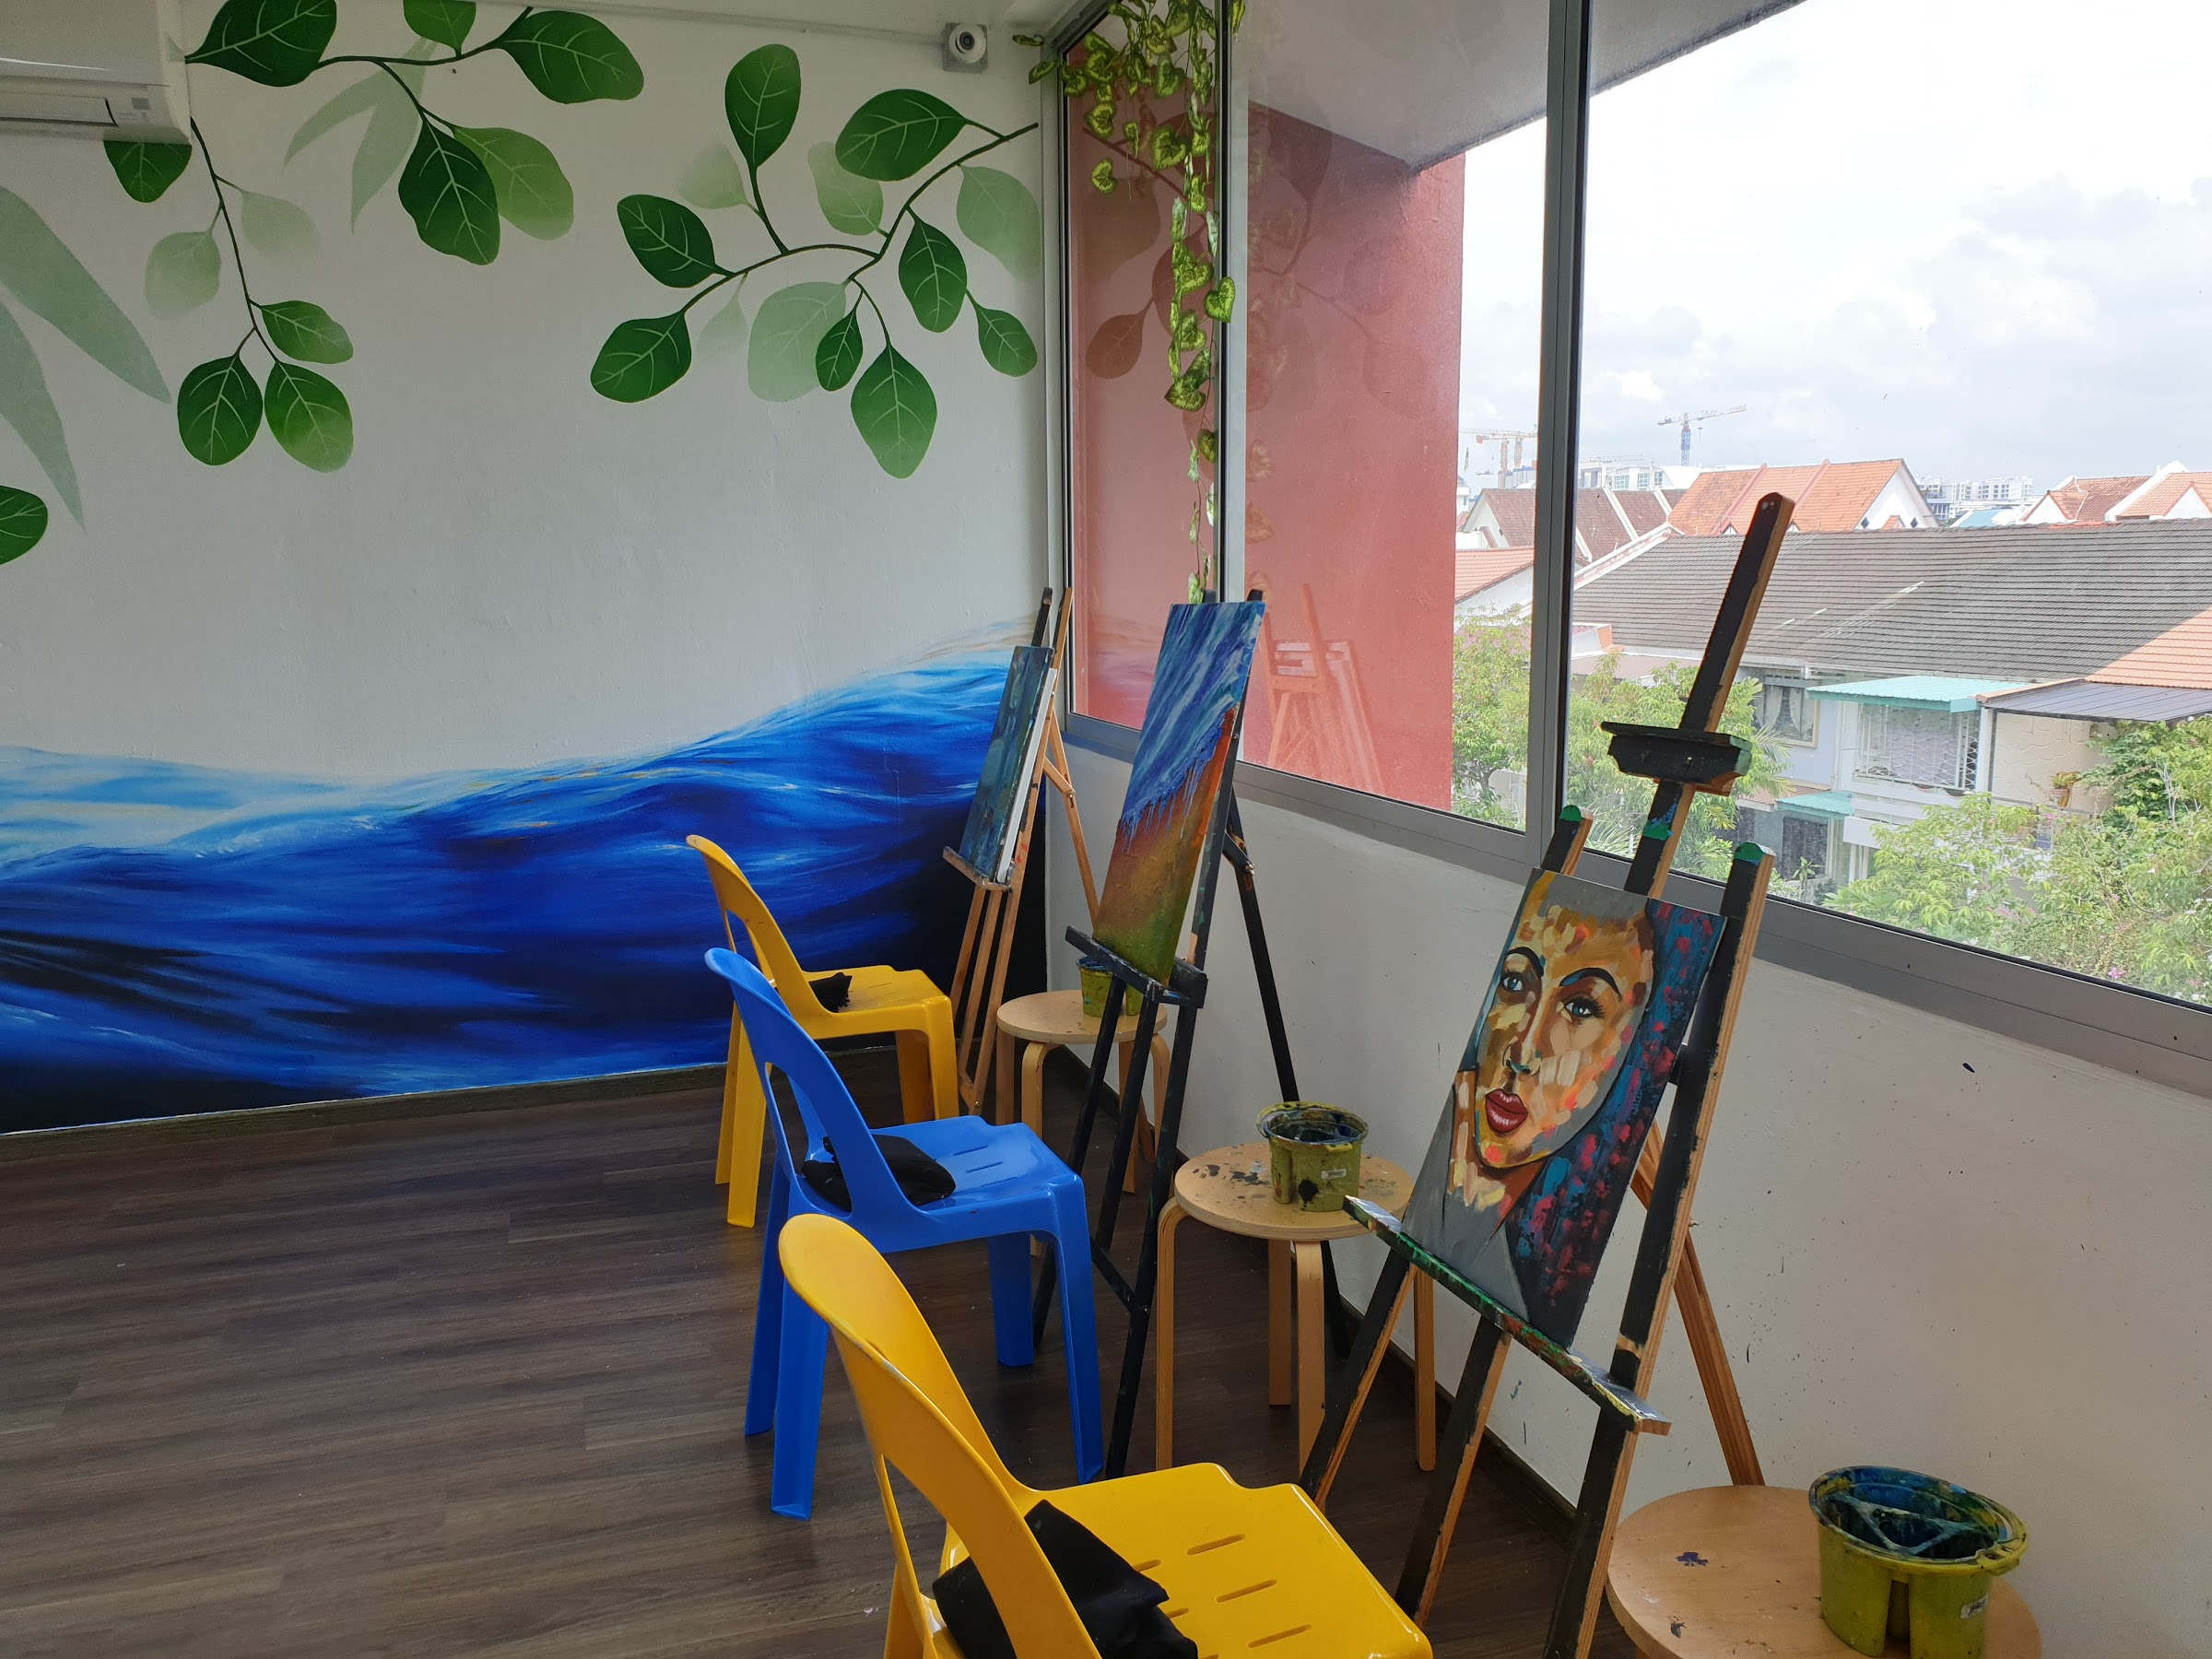 Enjoy the serenity of our studio. Beautiful hand painted mural decorates the walls. Surrounded by music of your choice, paint your heart away!